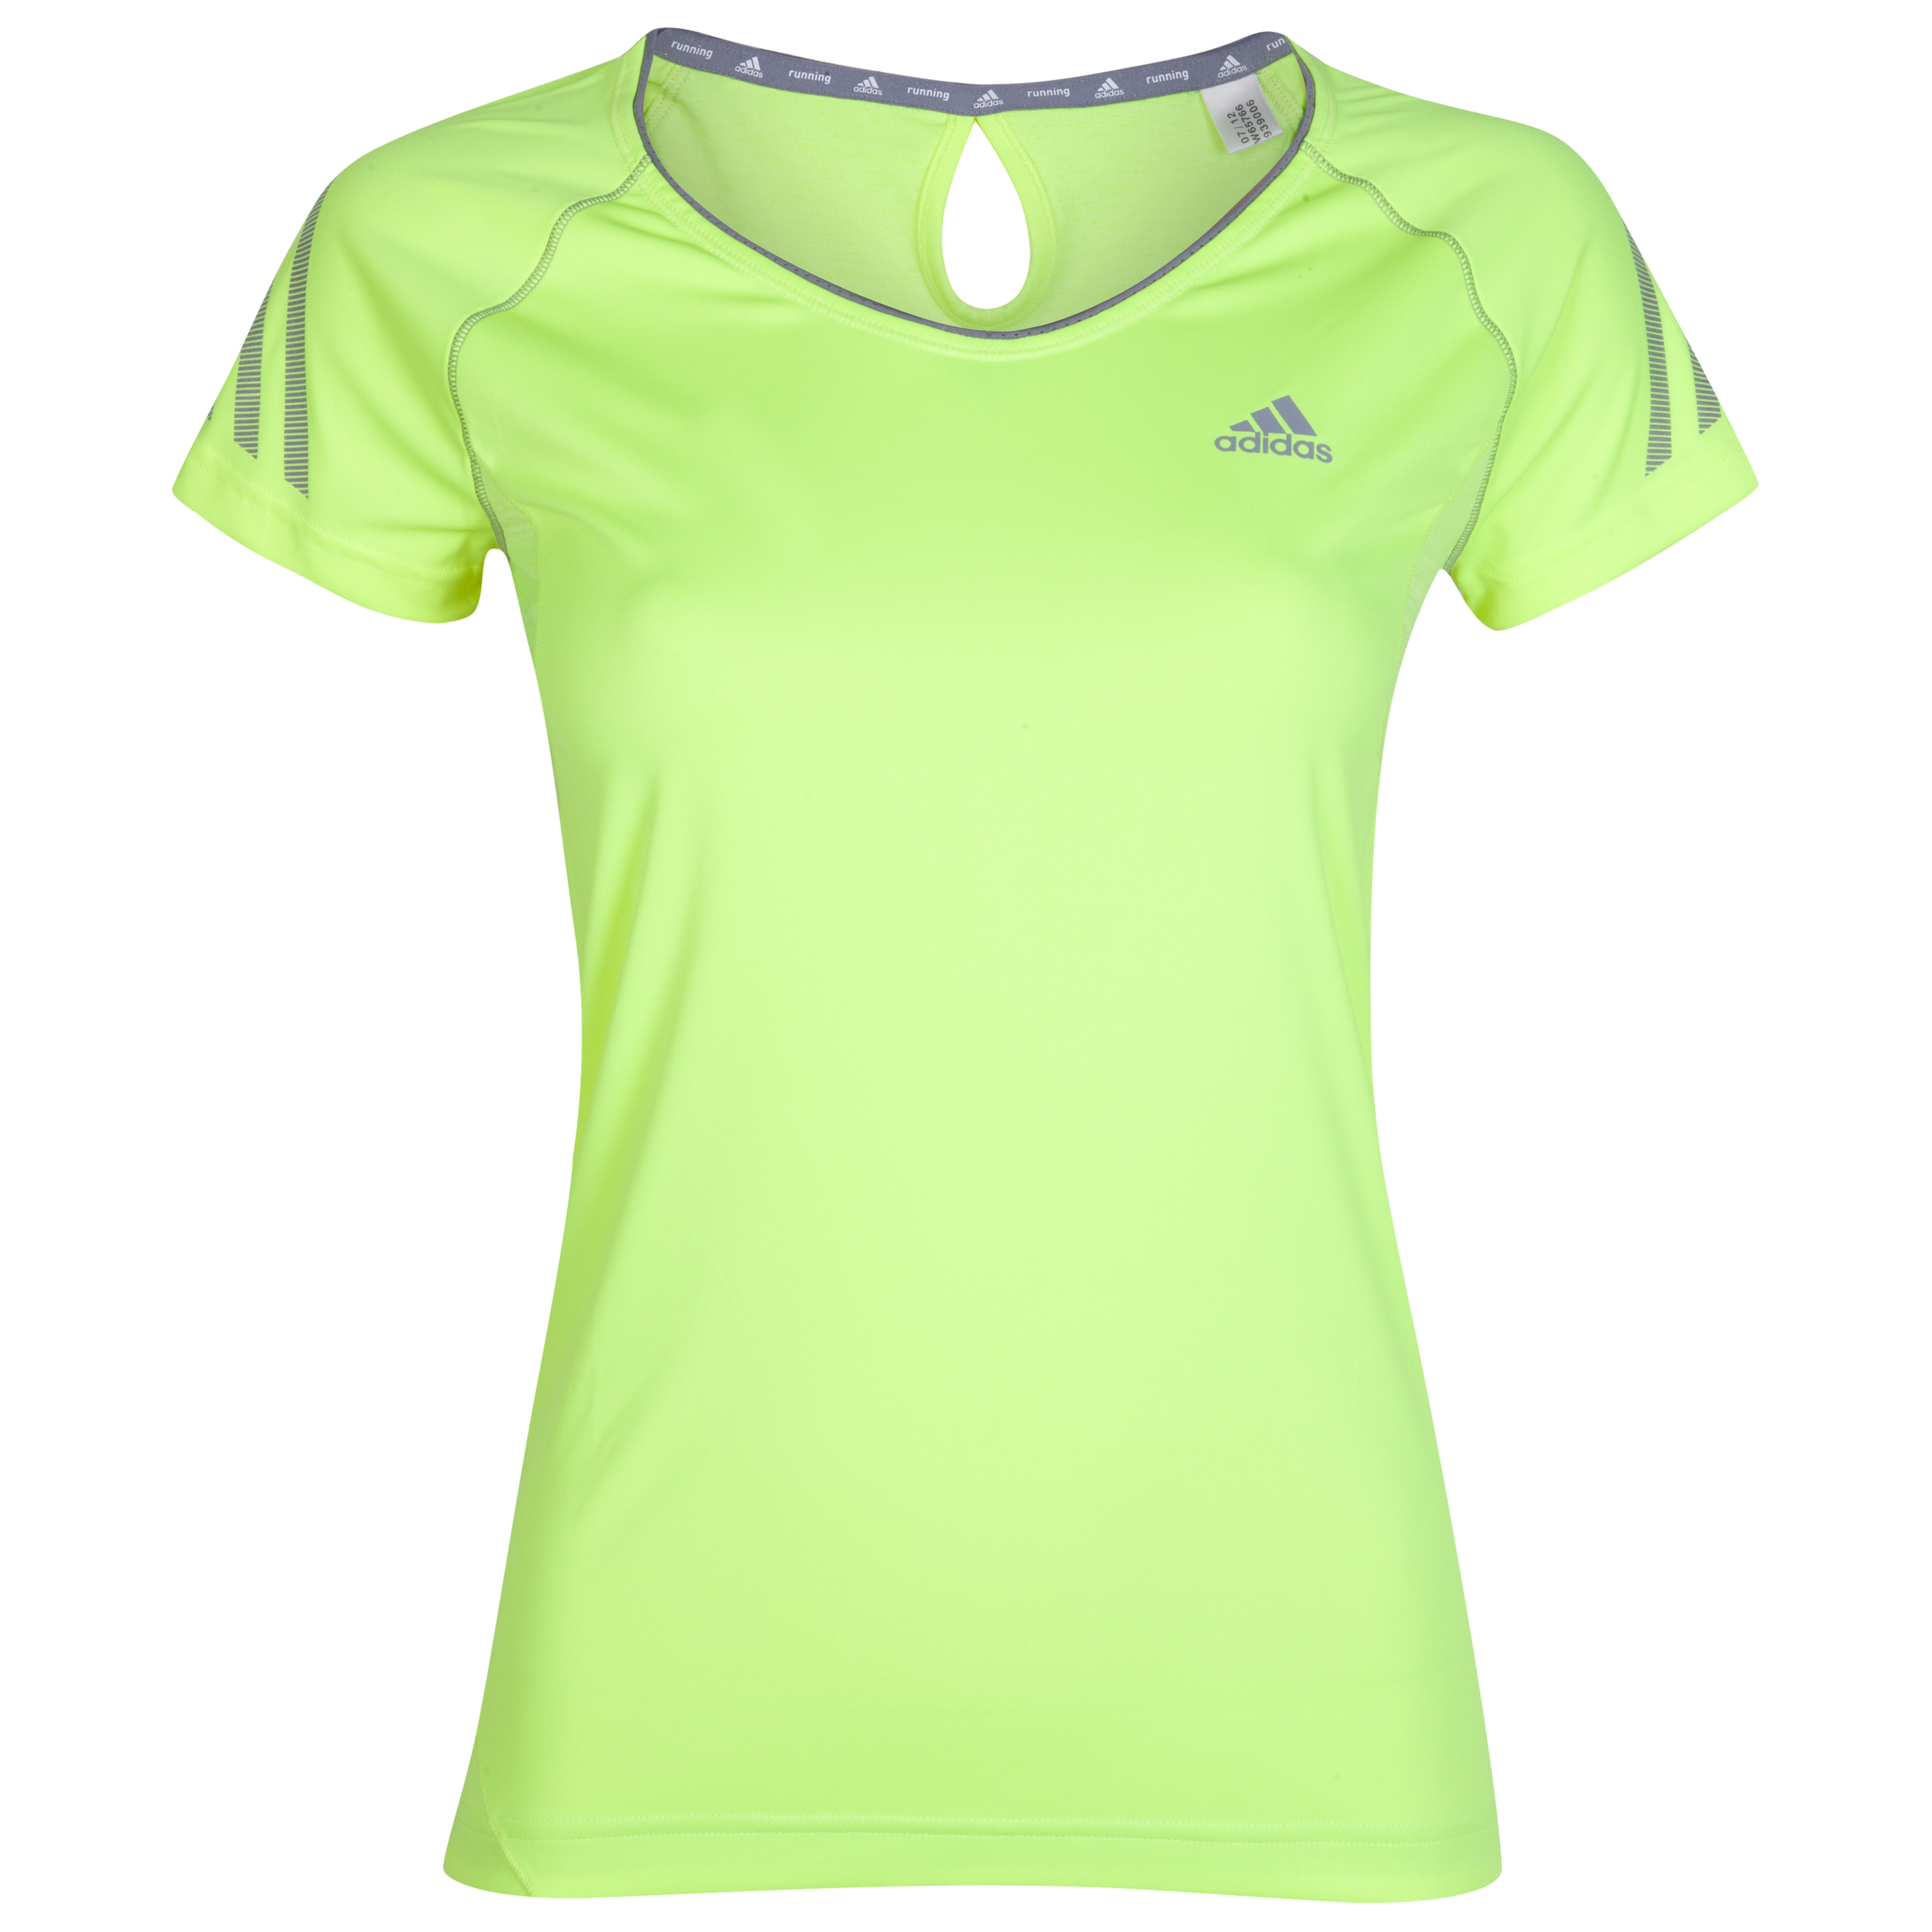 Adidas Supernova Short Sleeve T-Shirt - Womens